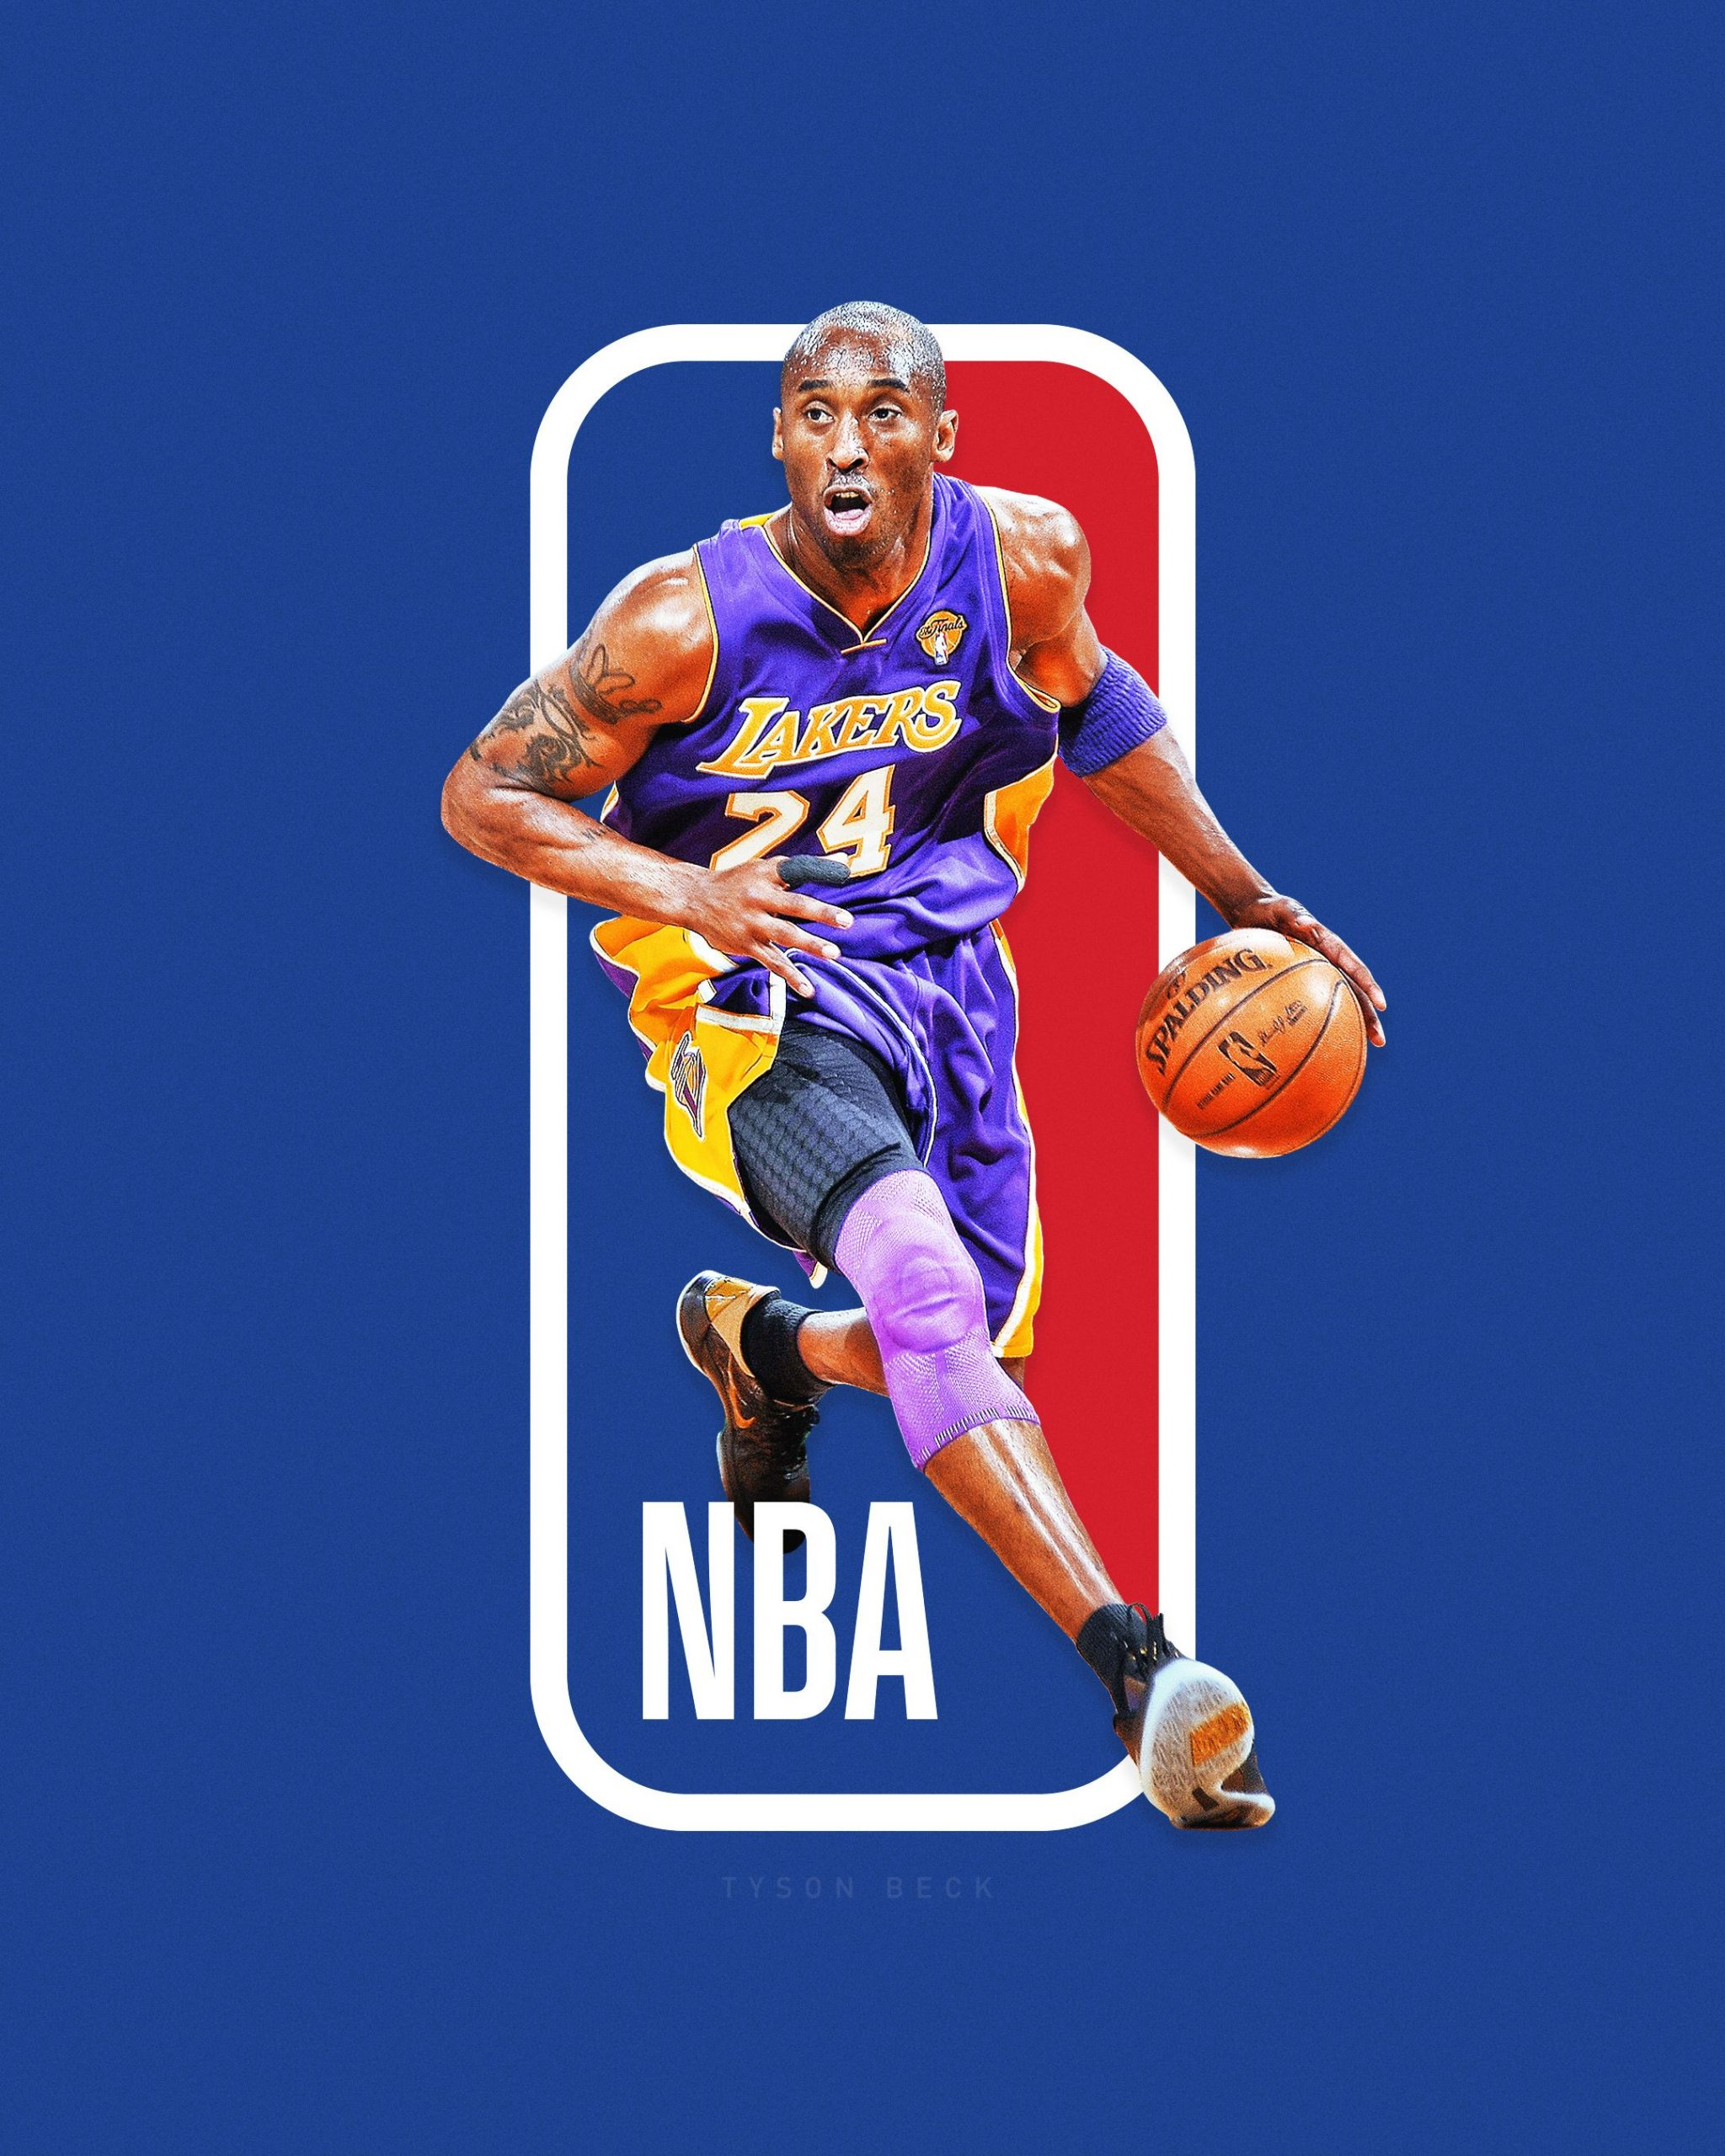 Jerry West Nba Logo Picture : jerry, picture, Kyrie, Irving, Suggests, Bryant, Should, Replace, Jerry, NBA's, Fashionsizzle